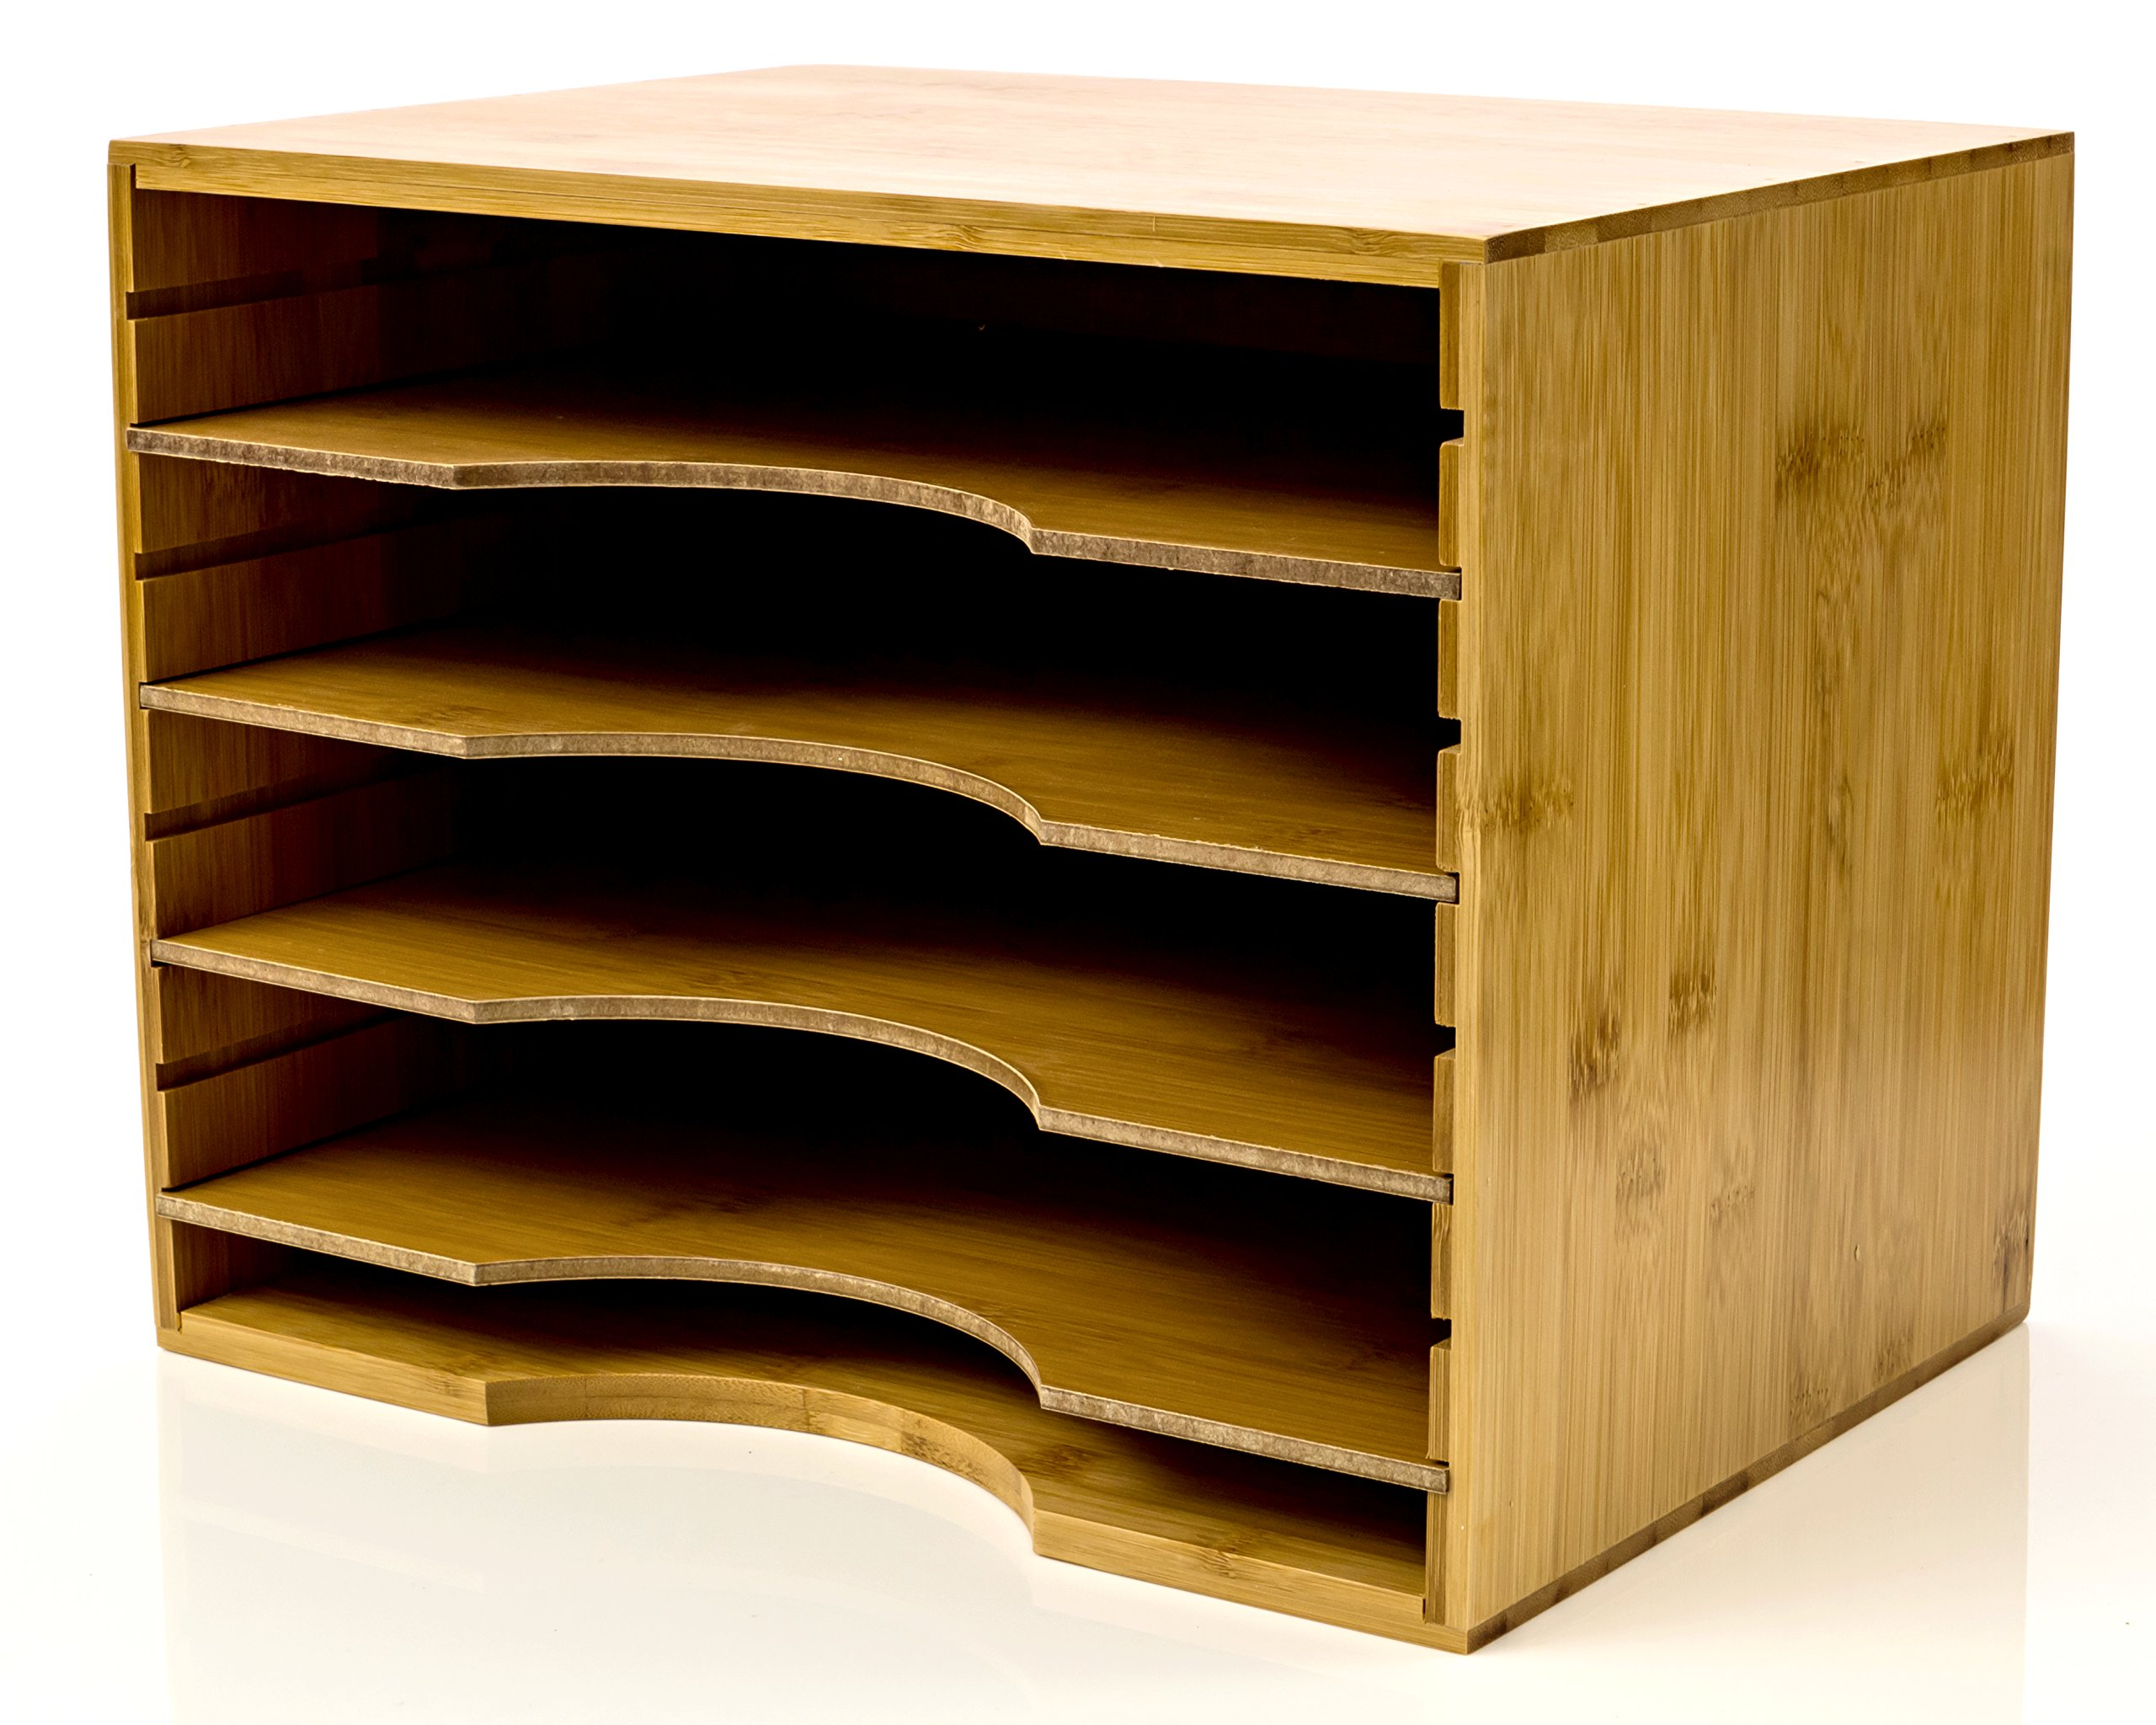 File Organizer Mail sorter, With Four Adjustable Dividers Natural Bamboo wood Color By Intriom Bamboo Collection (File Organizer) by Intriom (Image #1)